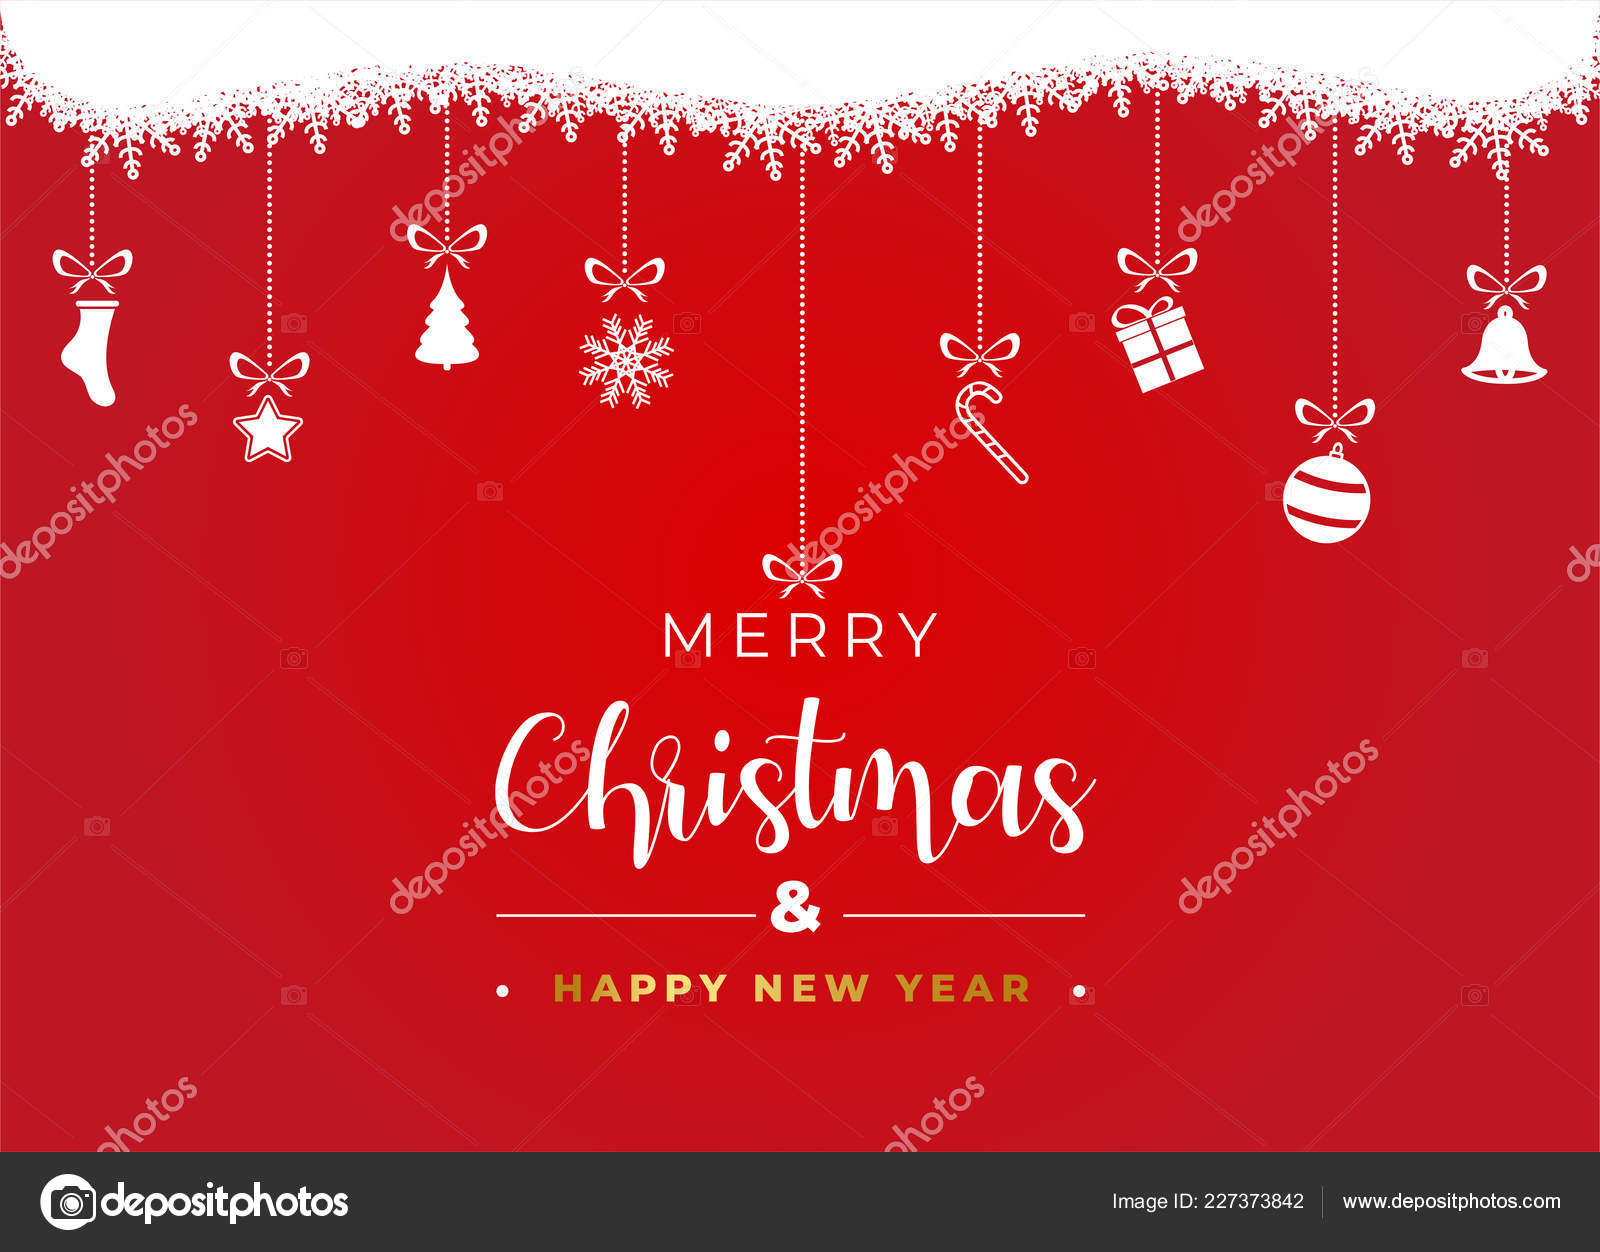 Merry Christmas Happy New Year Banner Christmas Decoration Red ...